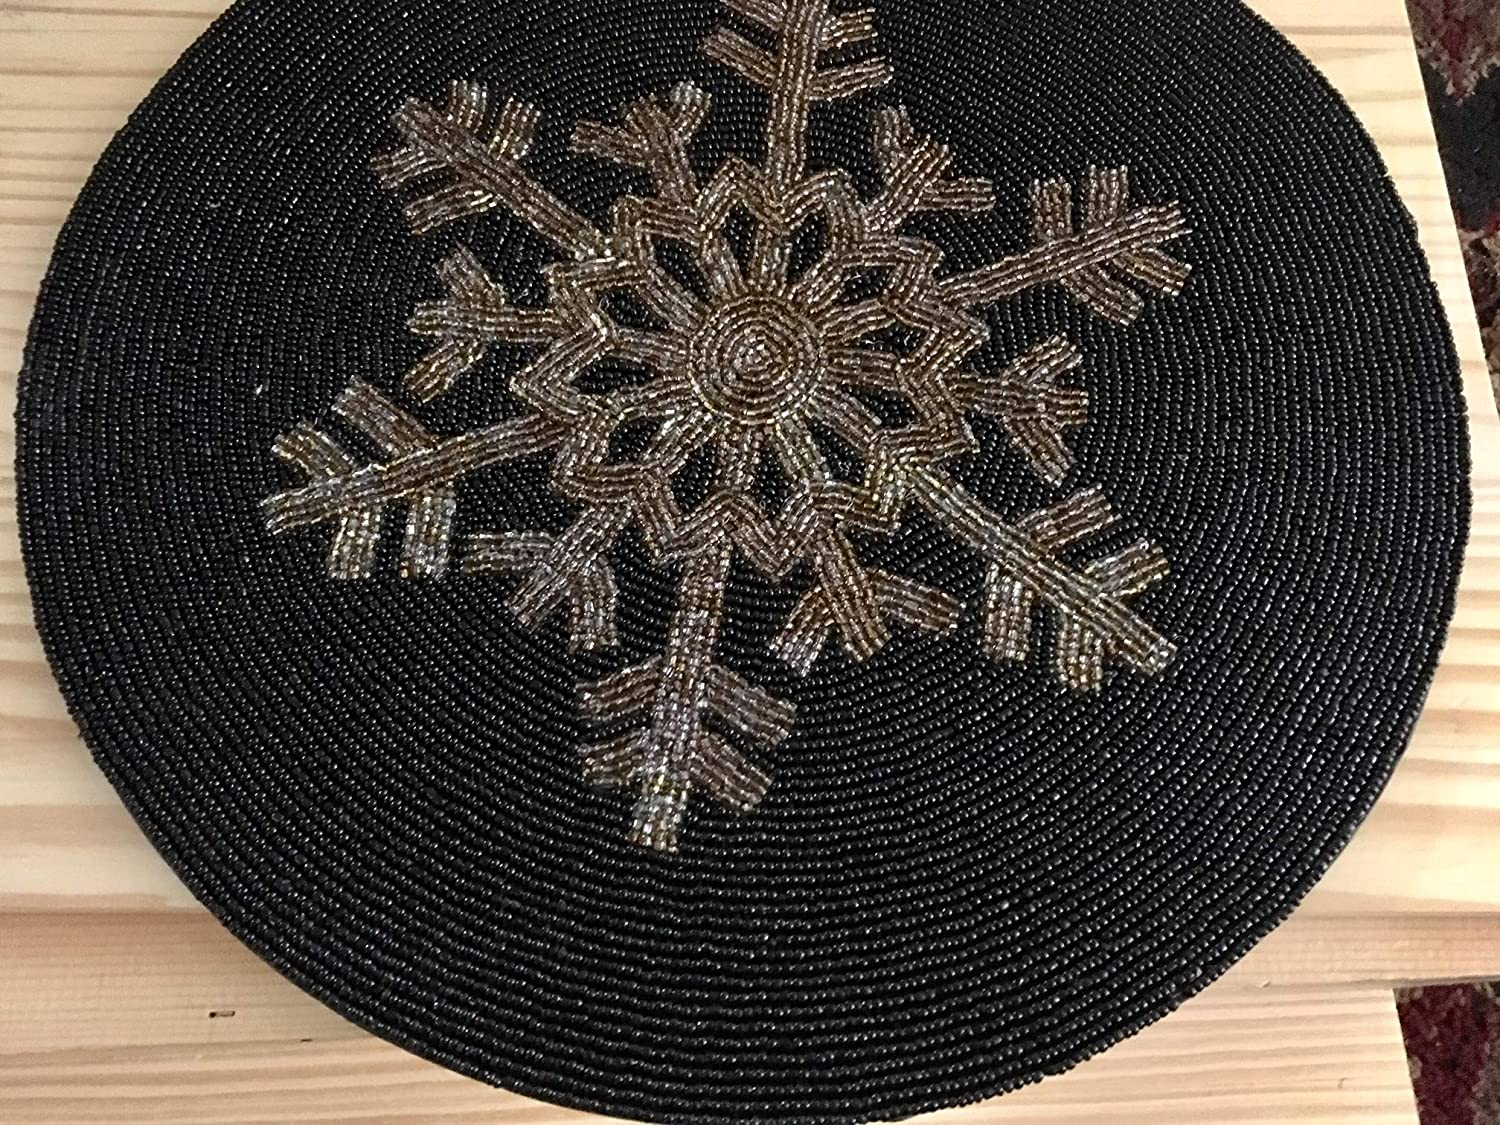 Holiday christmas gift Handmade Beaded Black and Gold Table Mat, Centre piece, Beaded, Placemat, Decorative mat, Gift for her, Housewarming gift thanksgiving dinner table